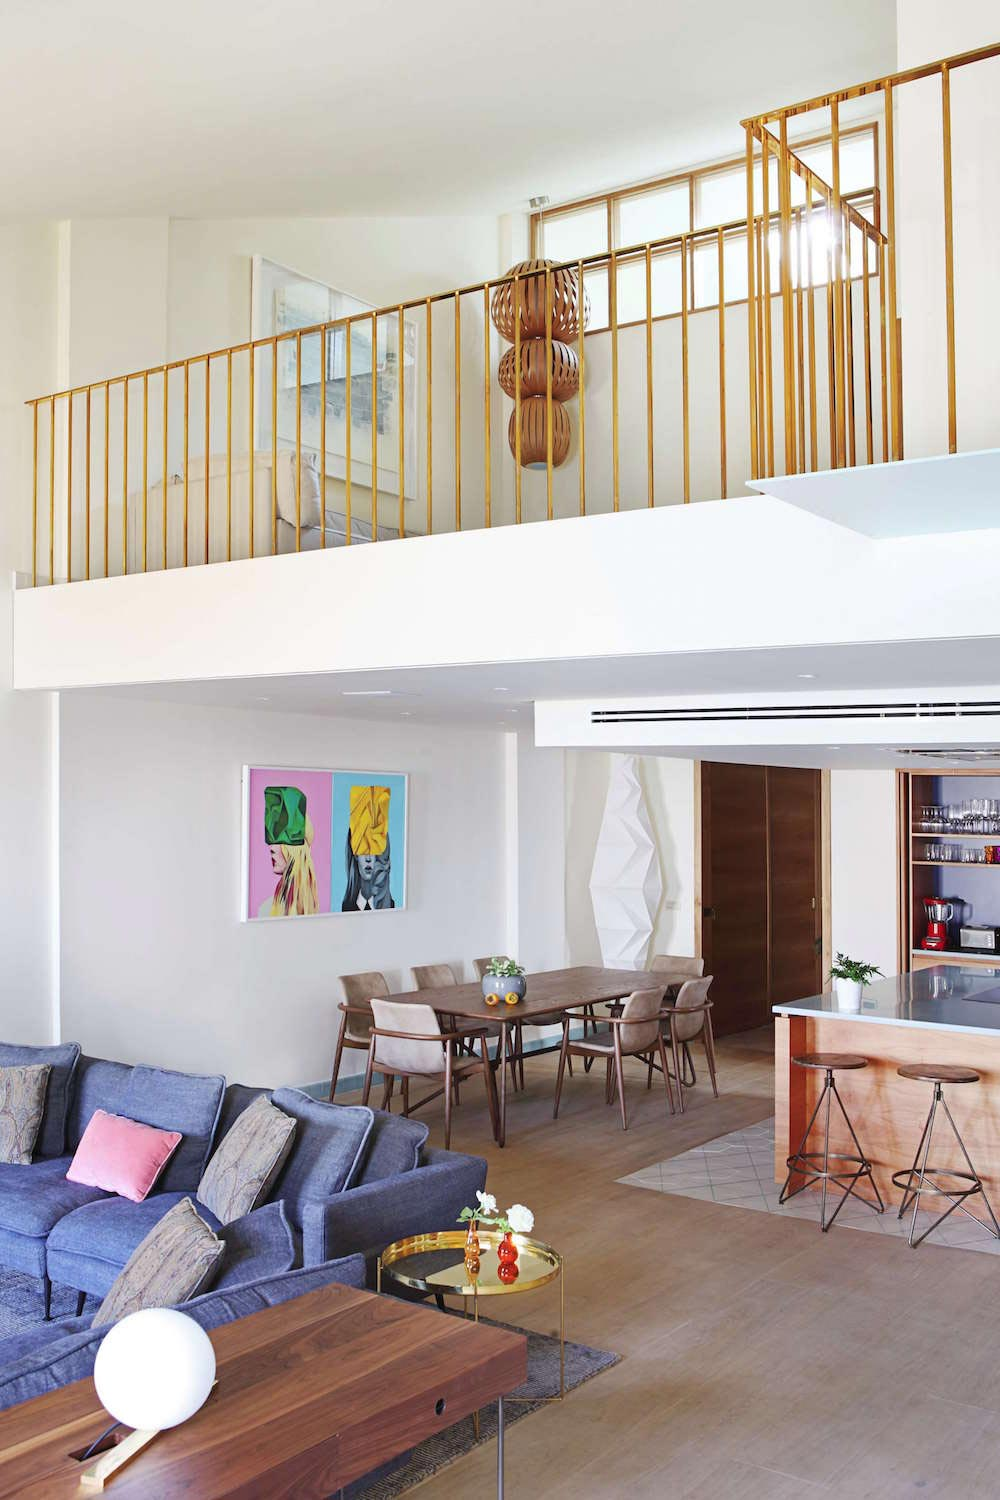 Two story modern apartment situated in the historical center of Valencia designed by Rubio and Ros